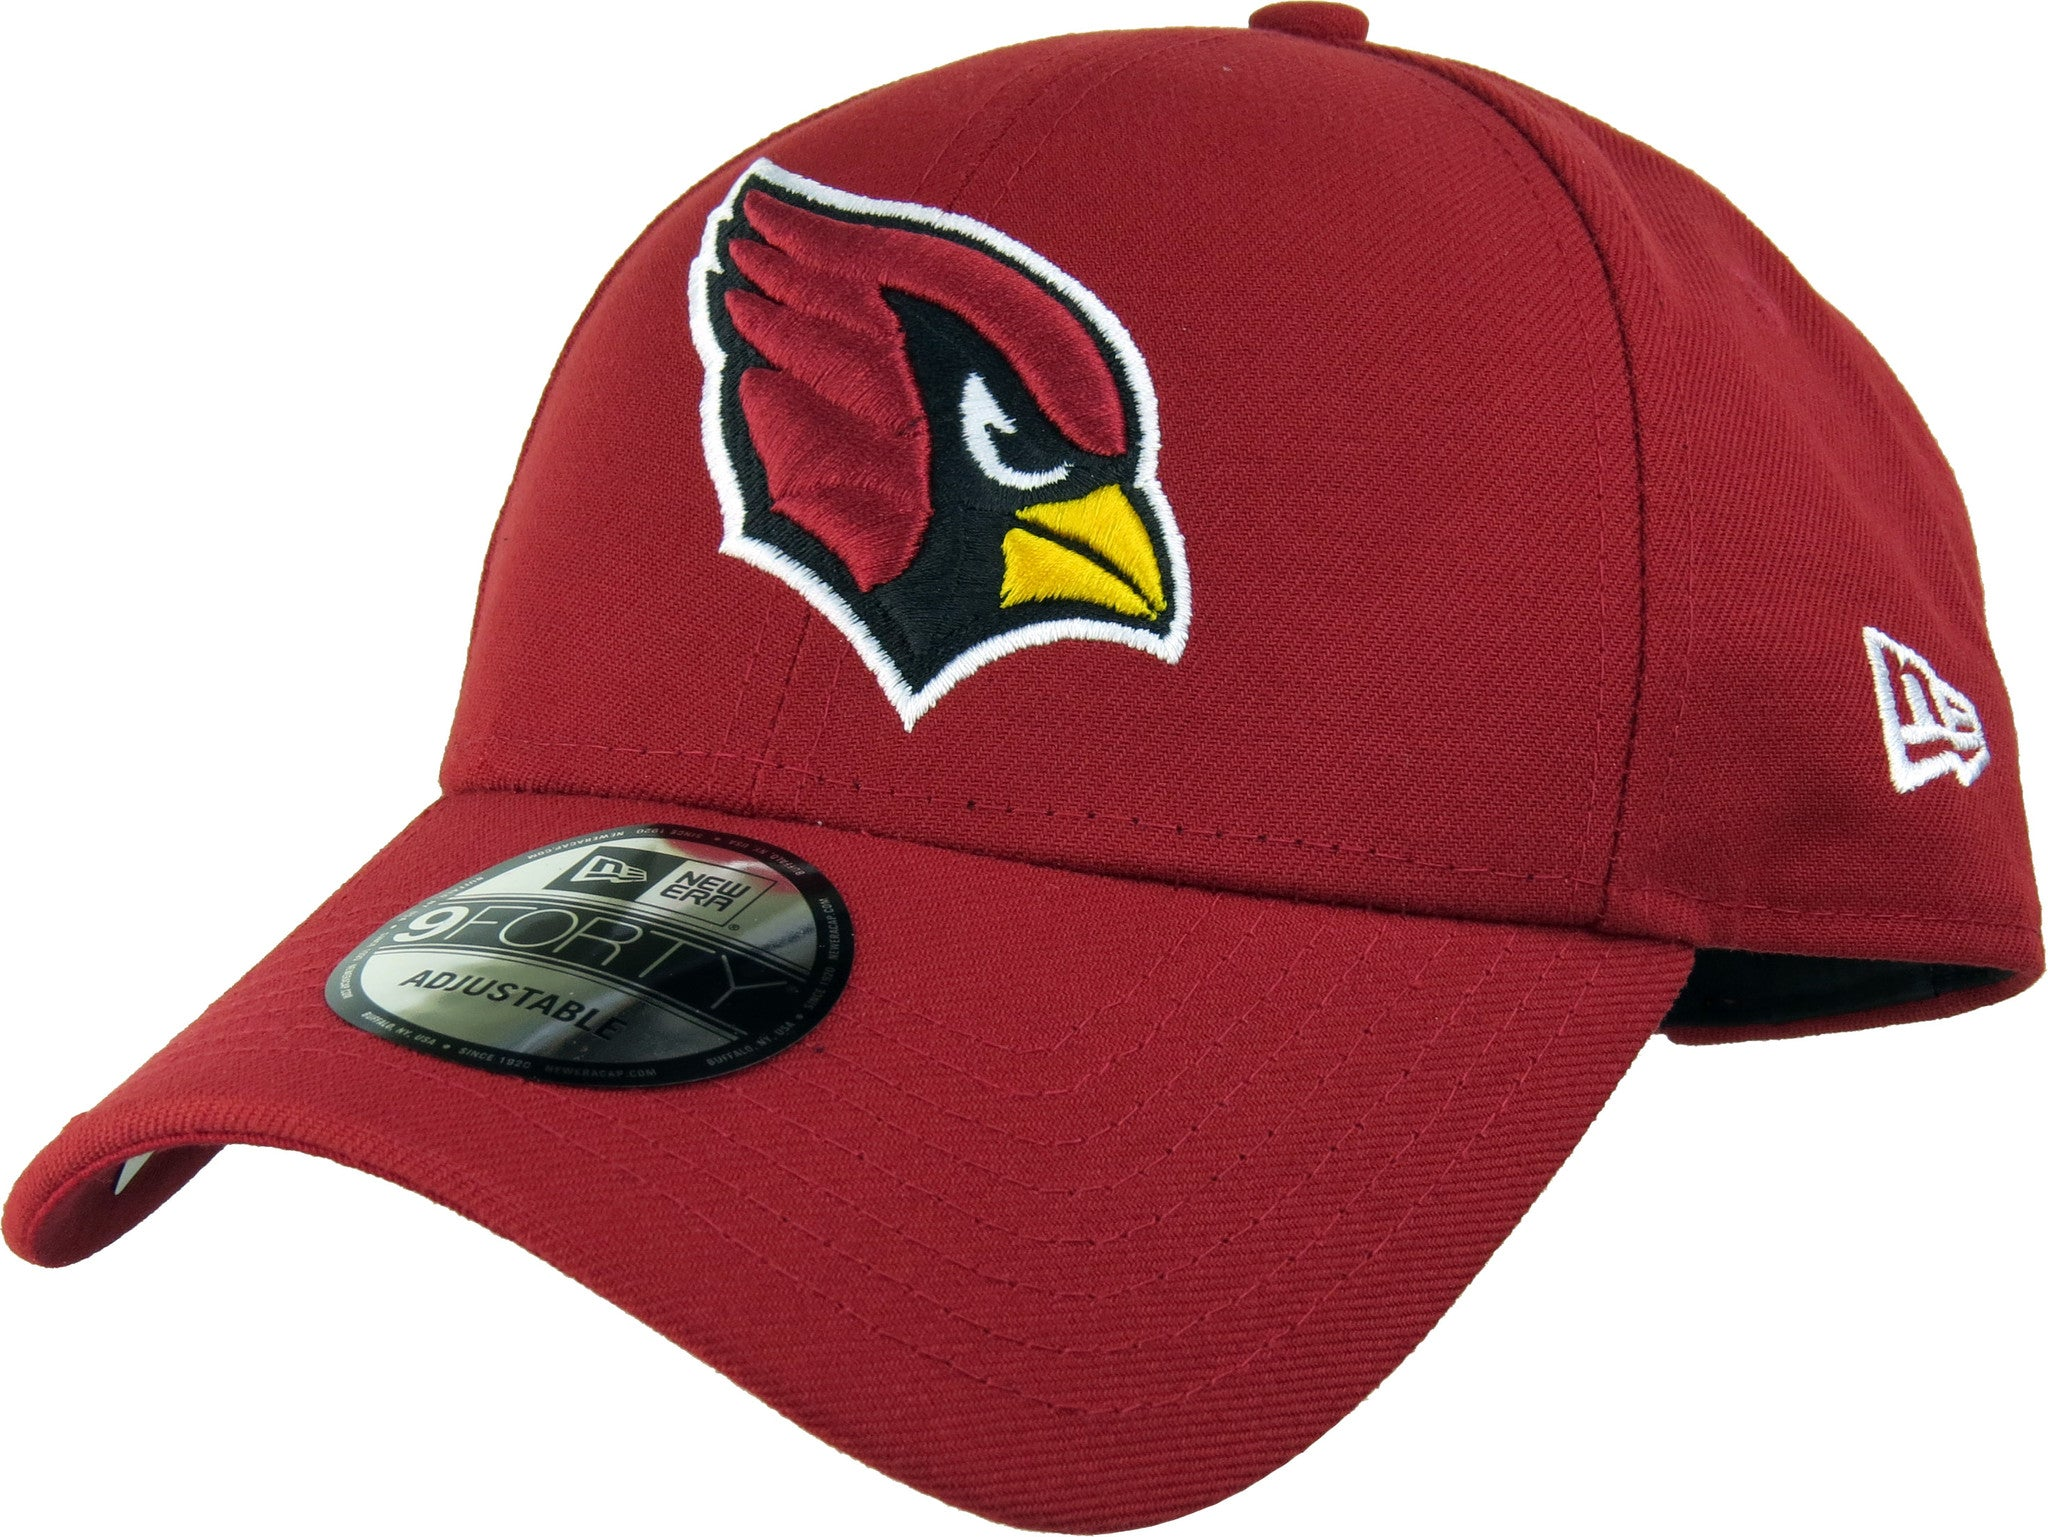 9fb8785a Arizona Cardinals New Era 940 The League NFL Adjustable Cap